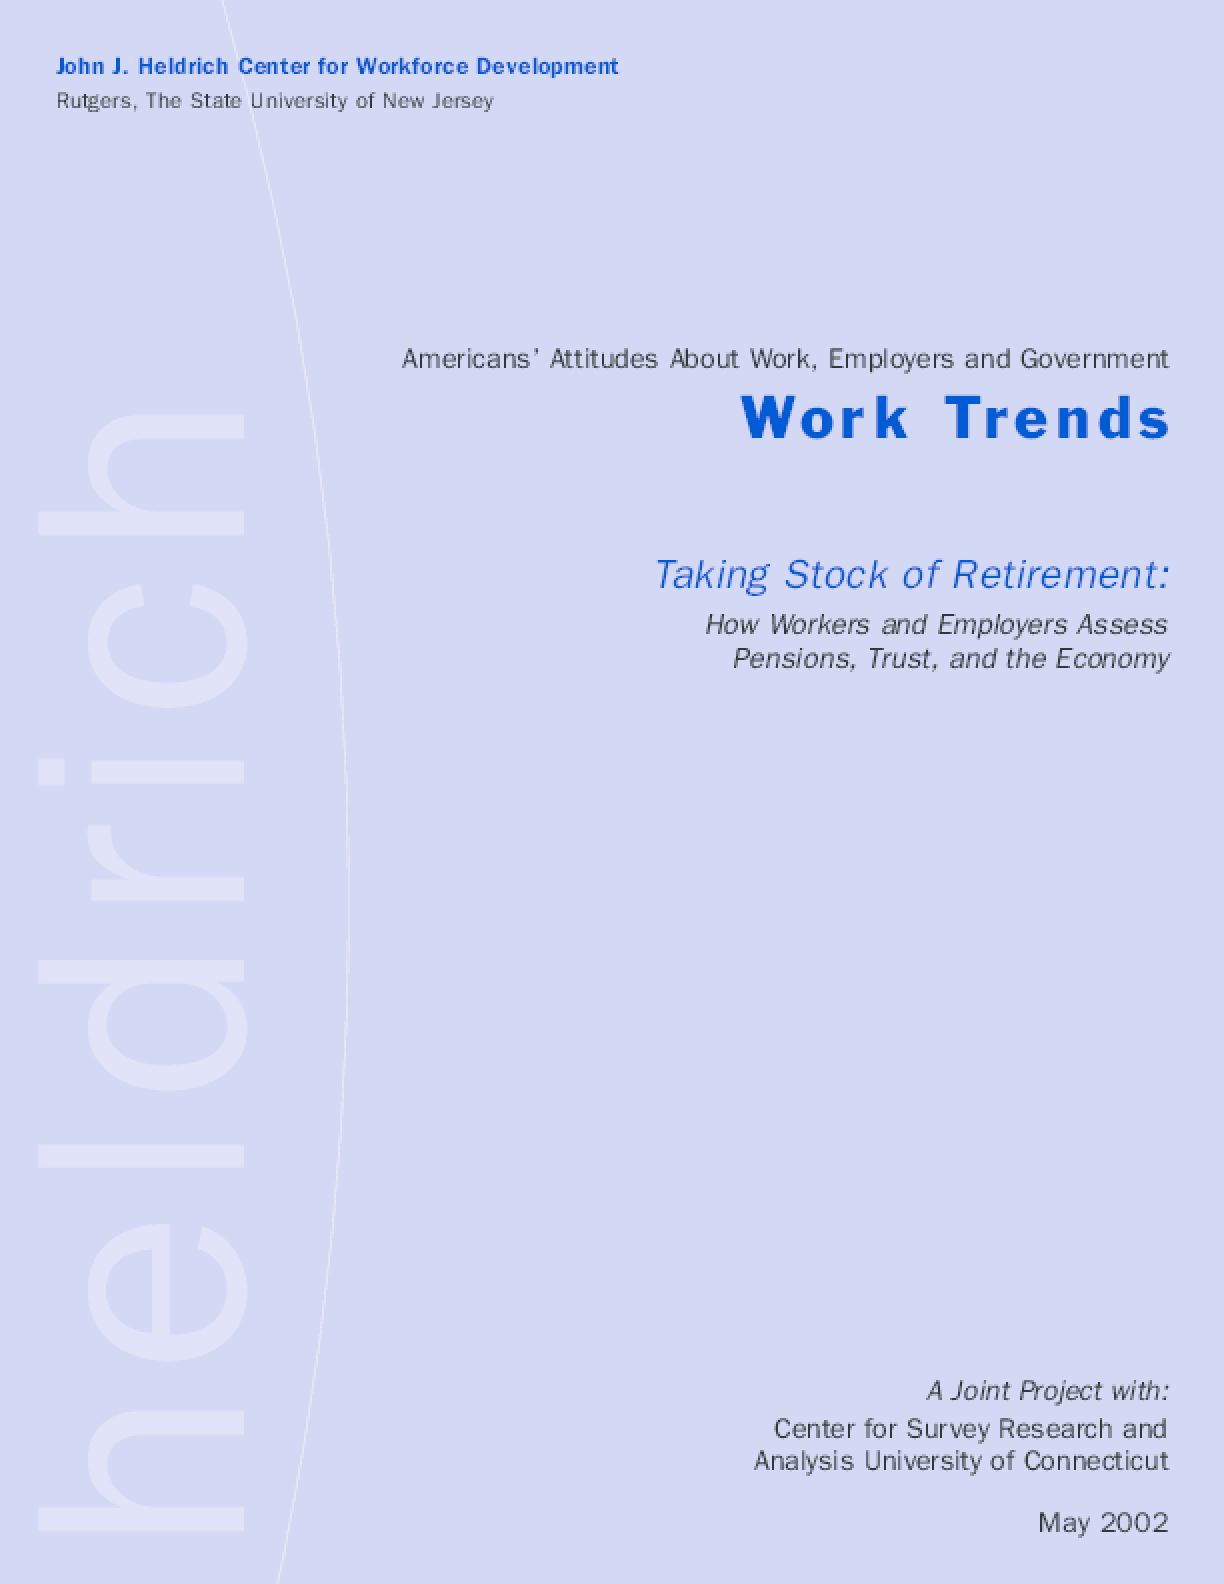 Taking Stock of Retirement: How Workers and Employers Assess Pensions, Trust, and the Economy